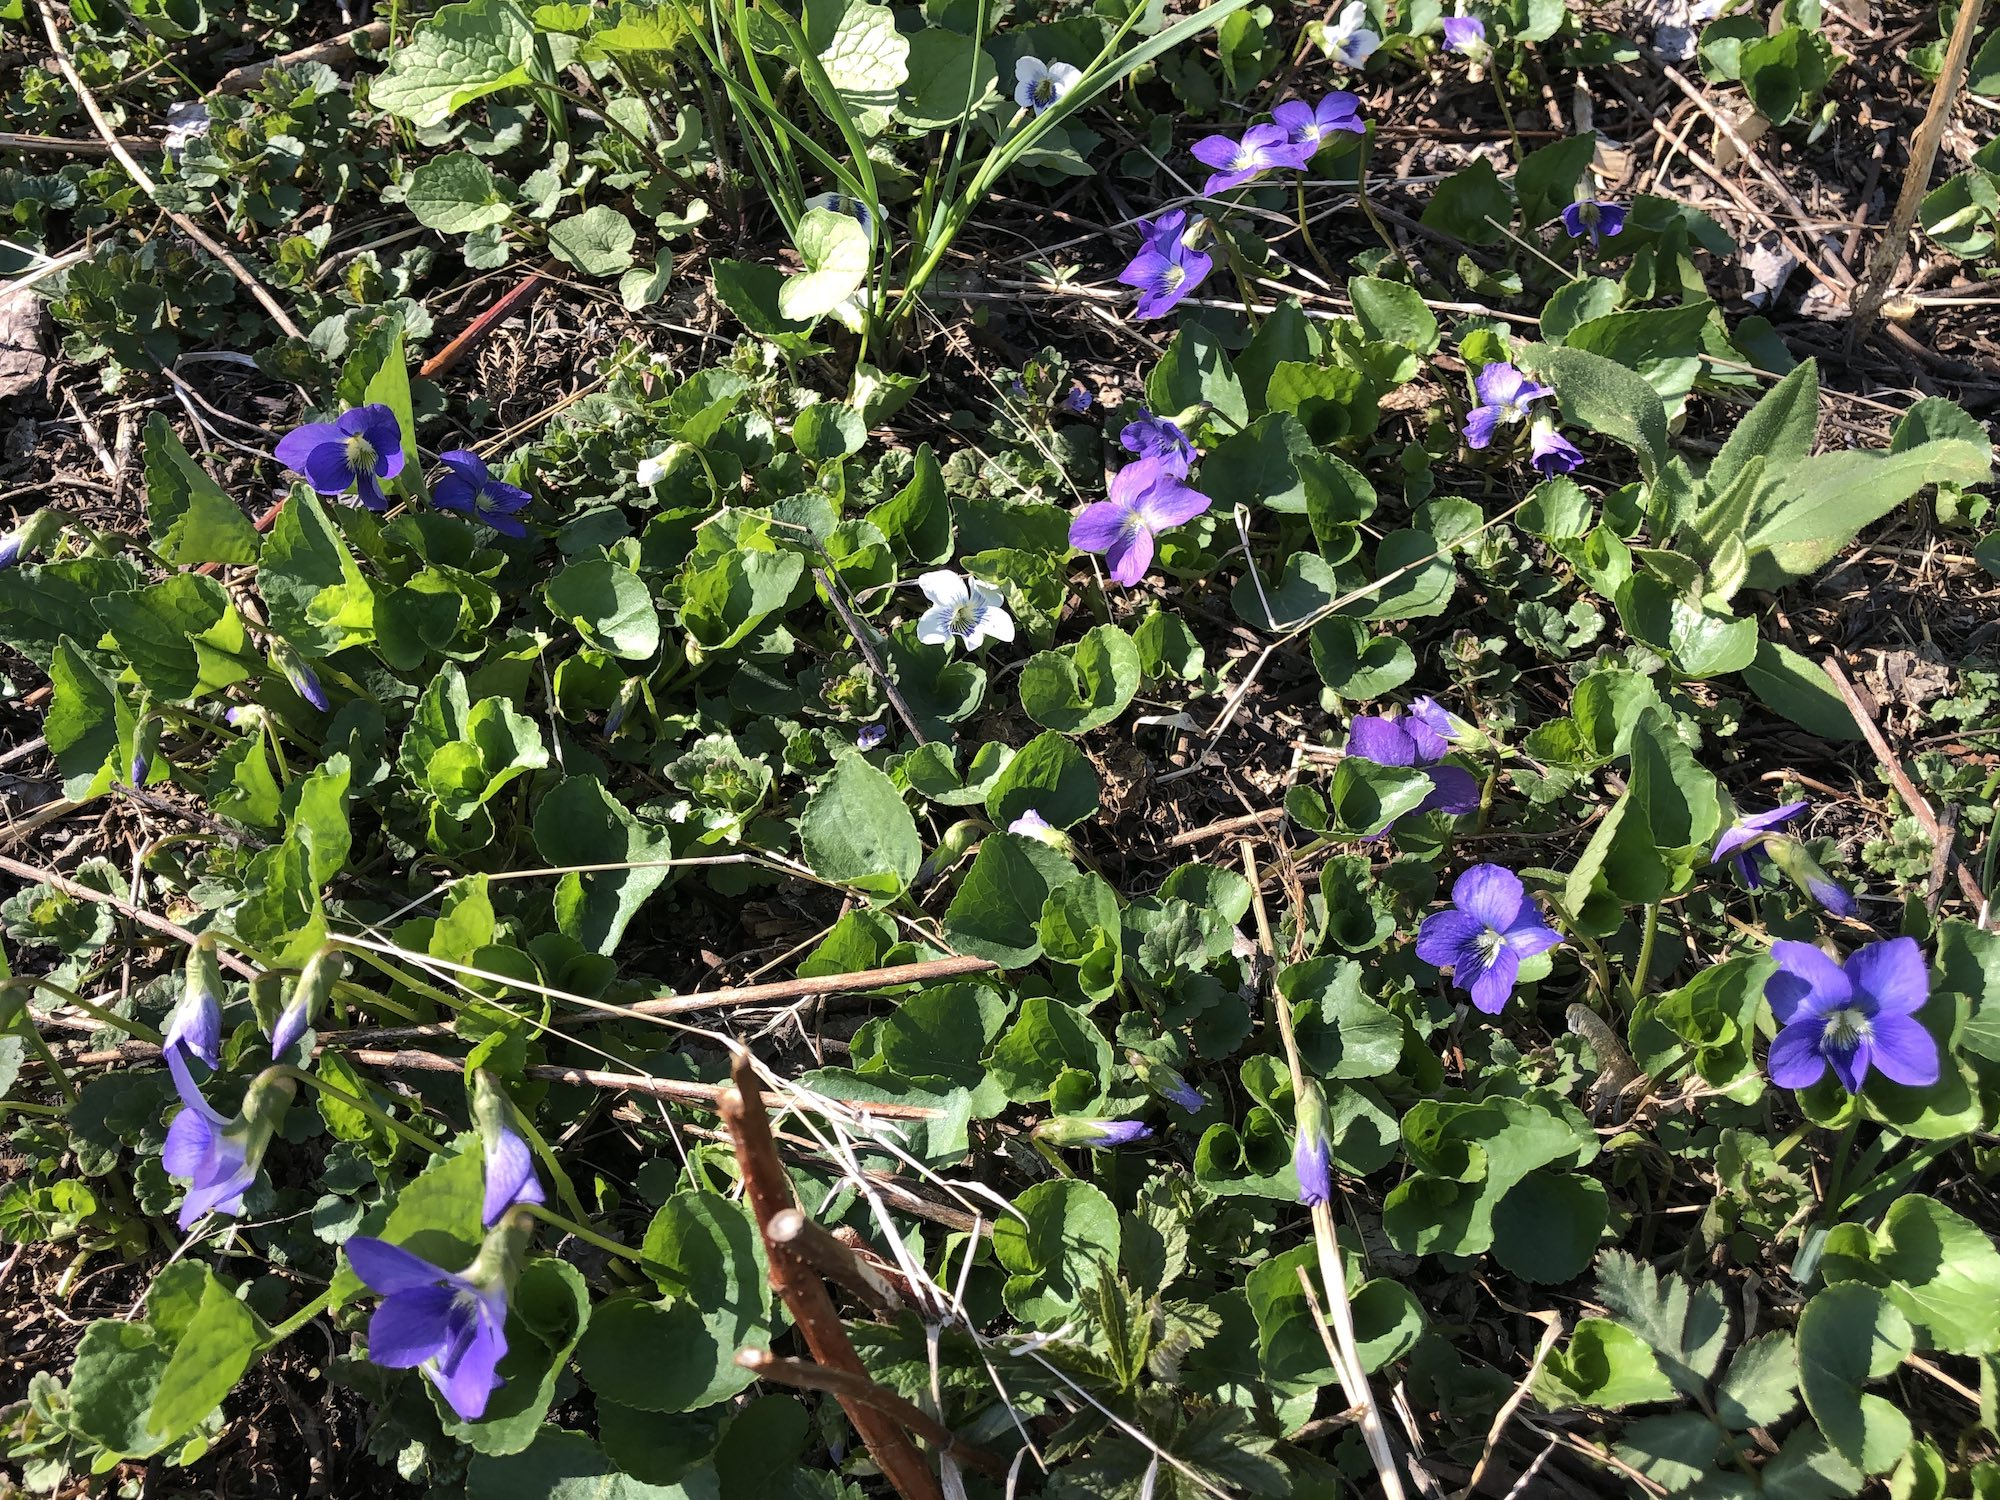 Wood Violets near Council Ring, the Oak Savanna and the Duck Pond on April 21, 2019.